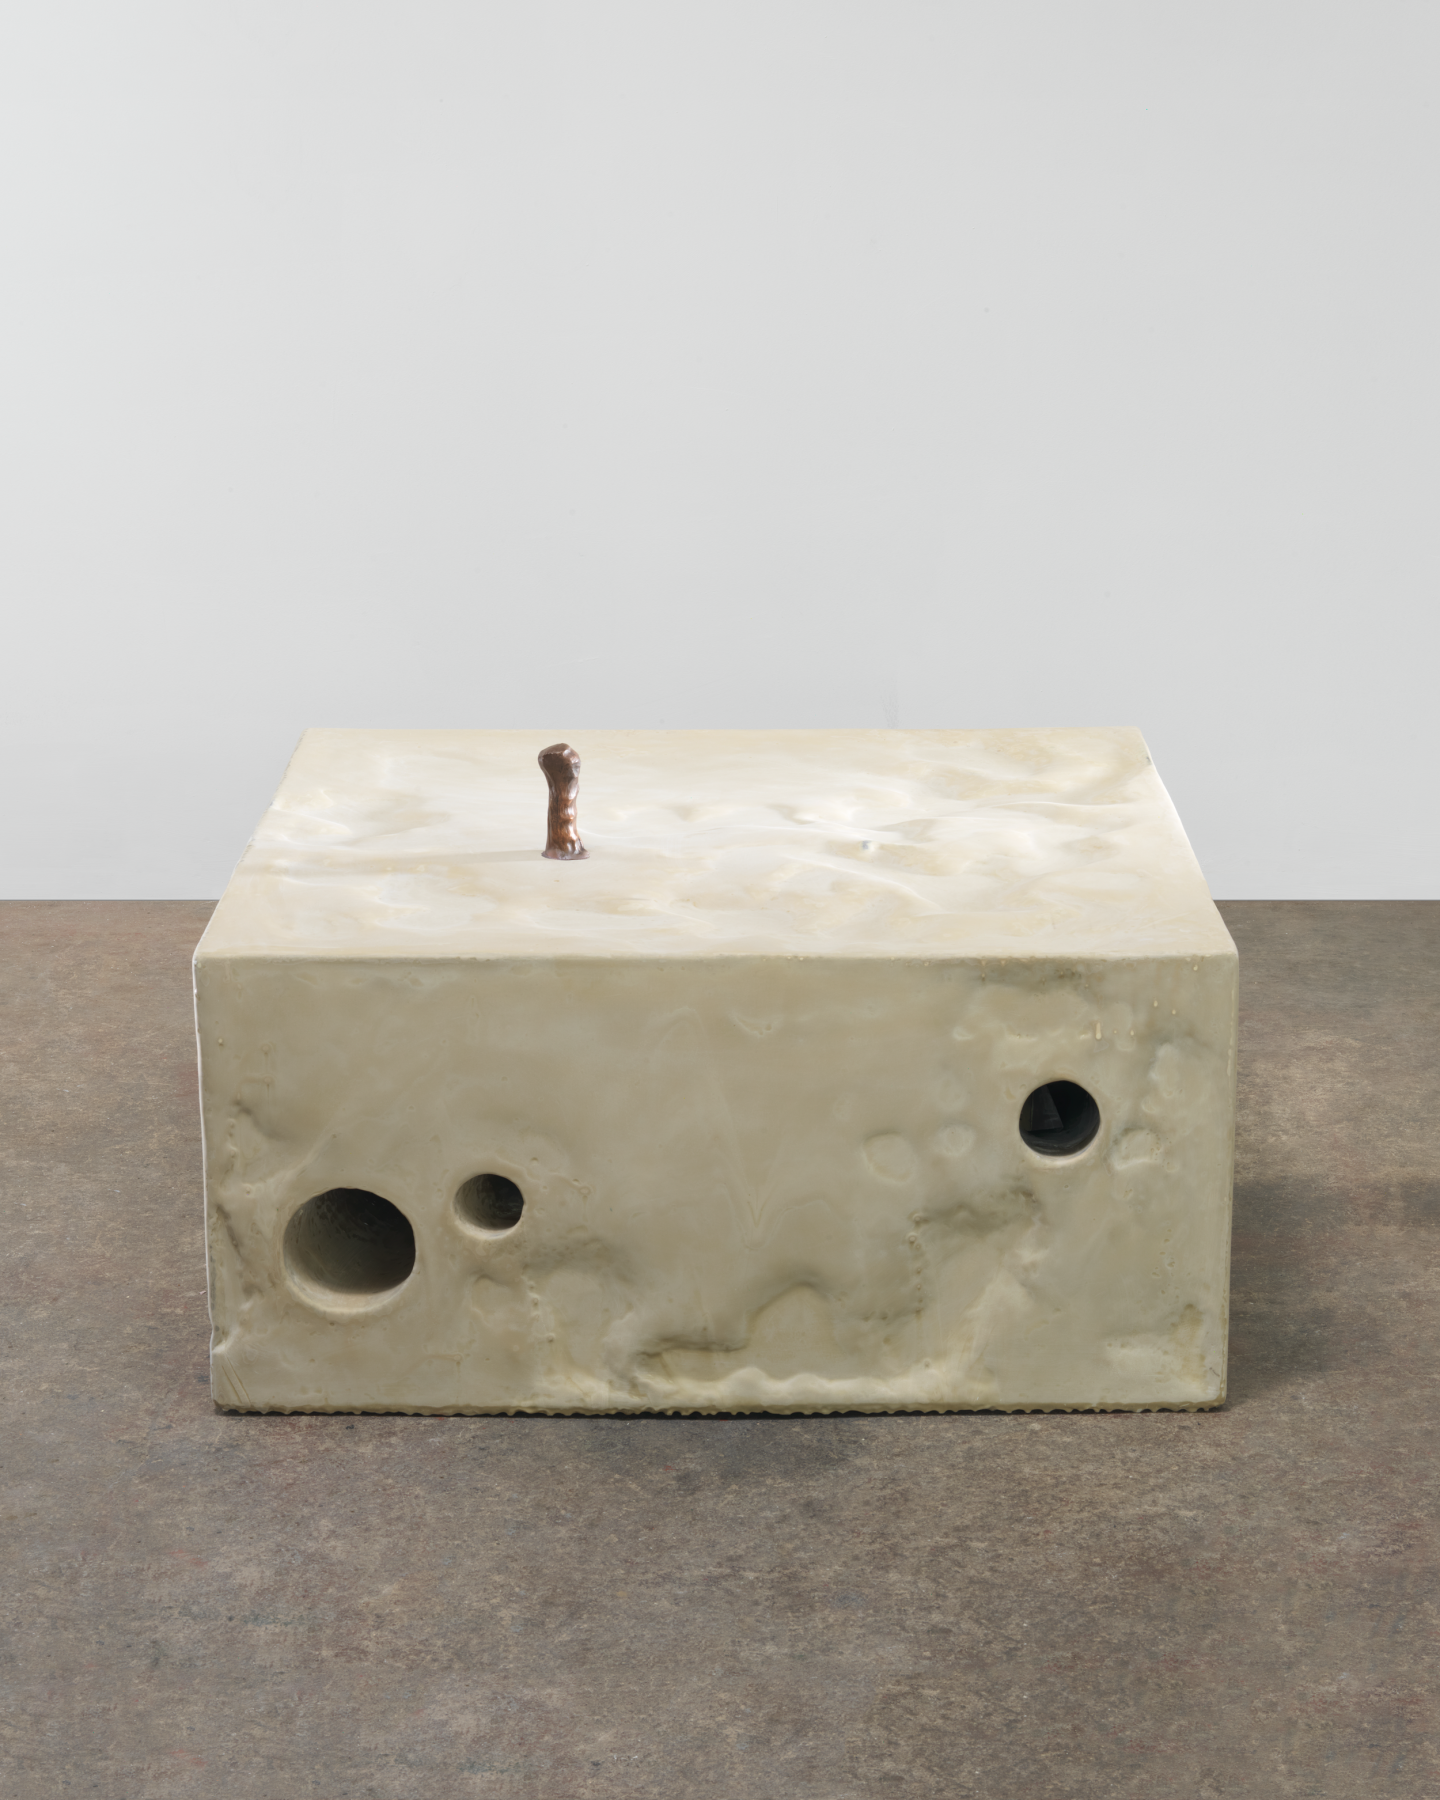 Position, 2013, Plastic, epoxy, and copper